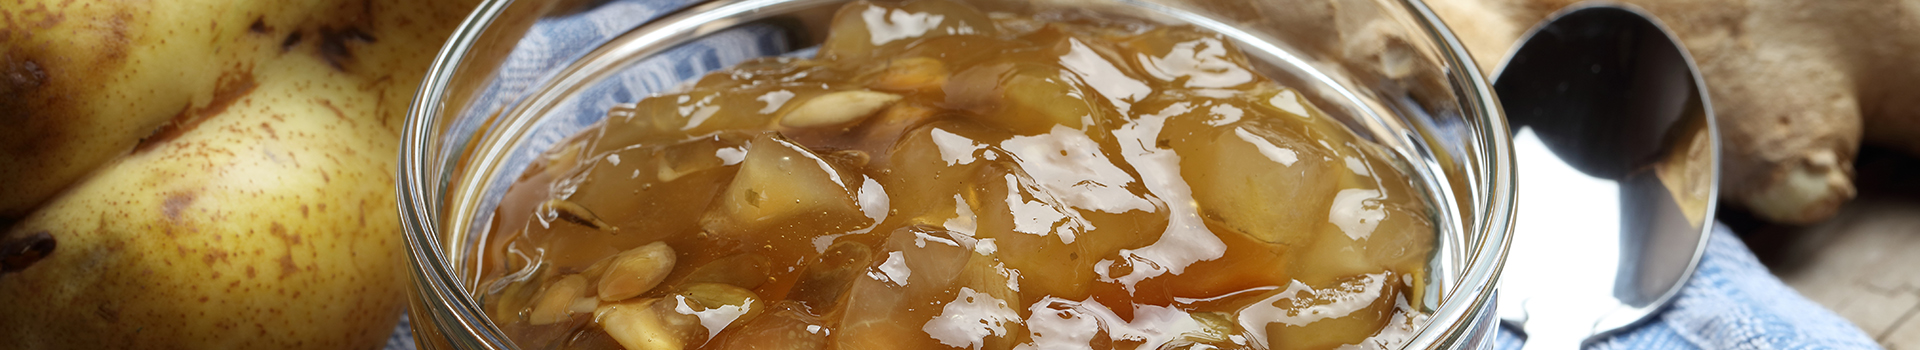 Pear and Ginger Preserve